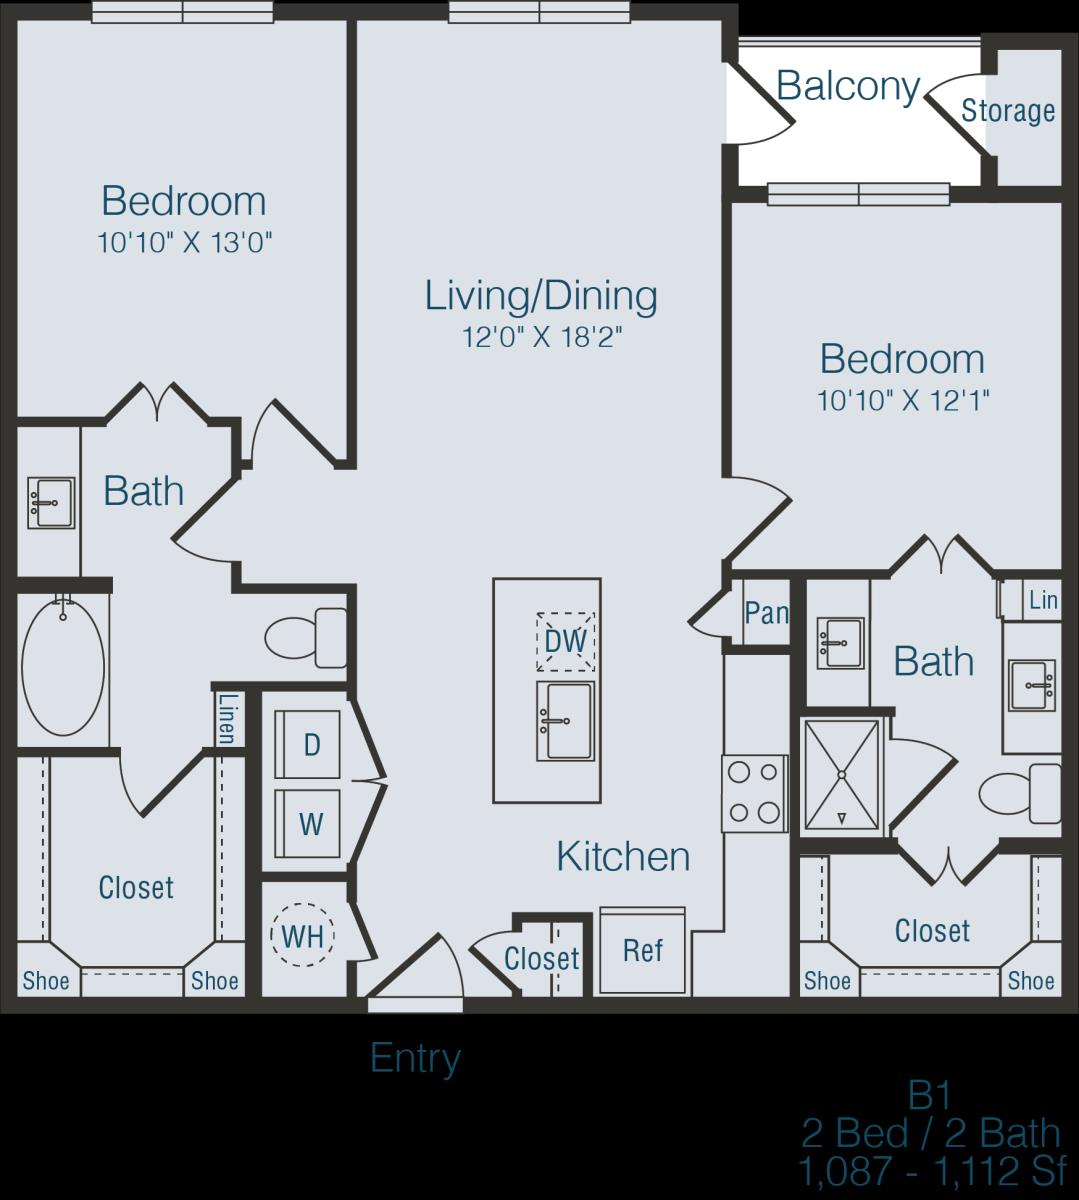 1,106 sq. ft. to 1,112 sq. ft. B1 floor plan